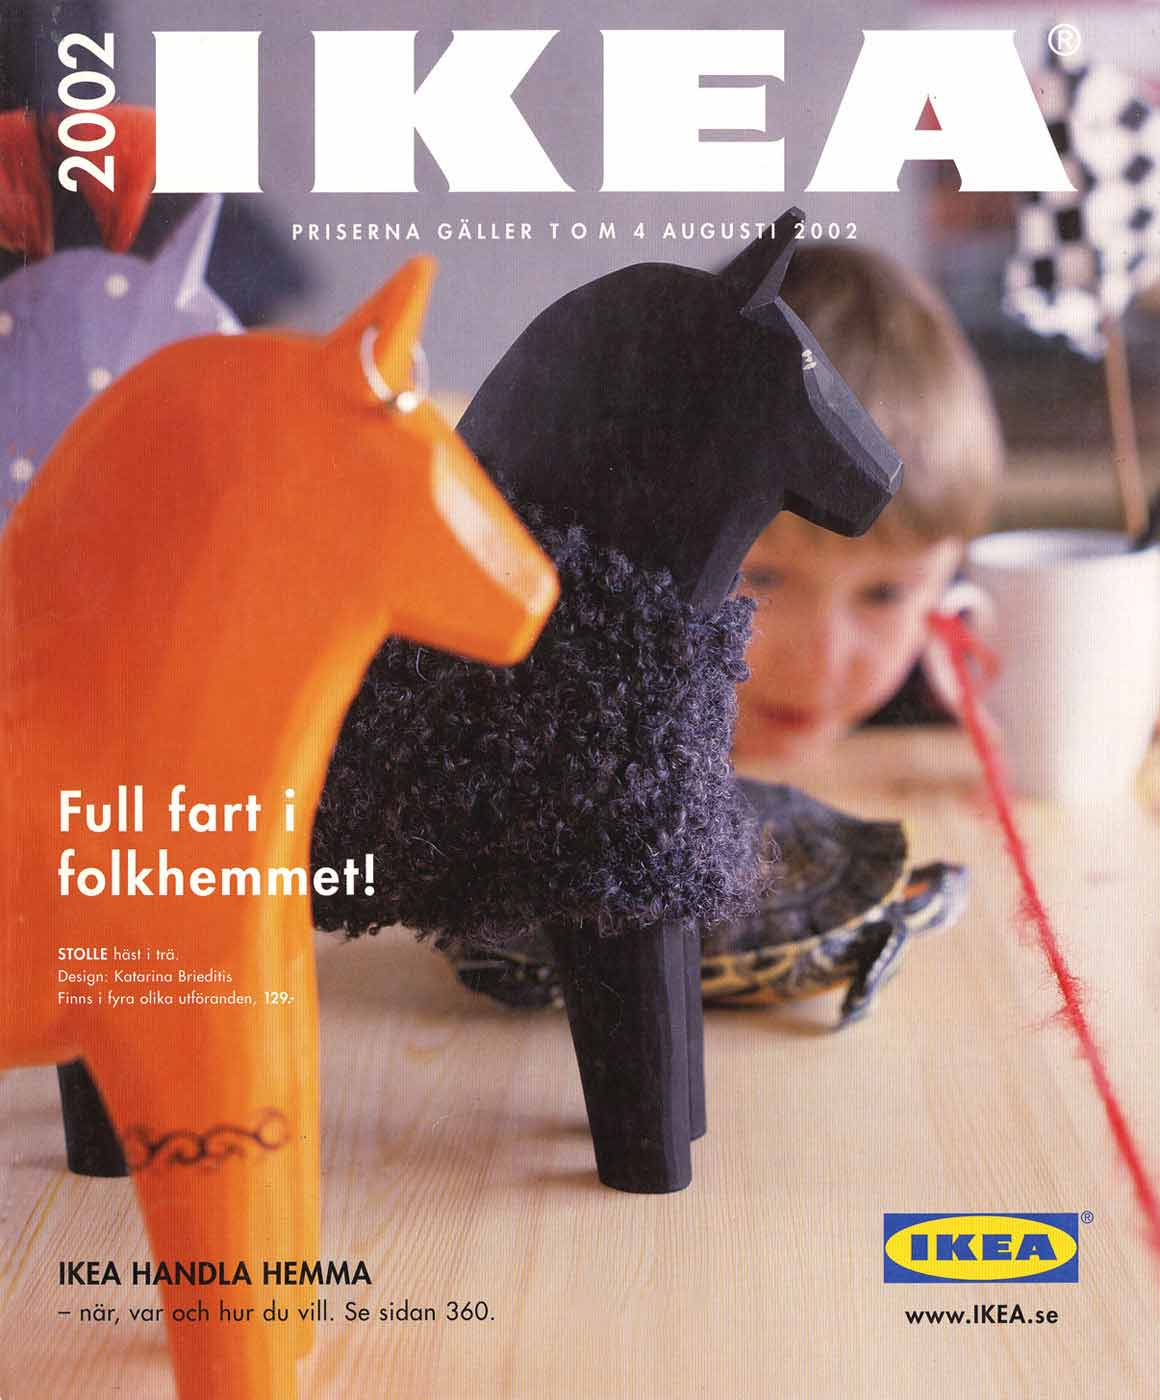 Ikea 2002 Catalog (Swedish edition)